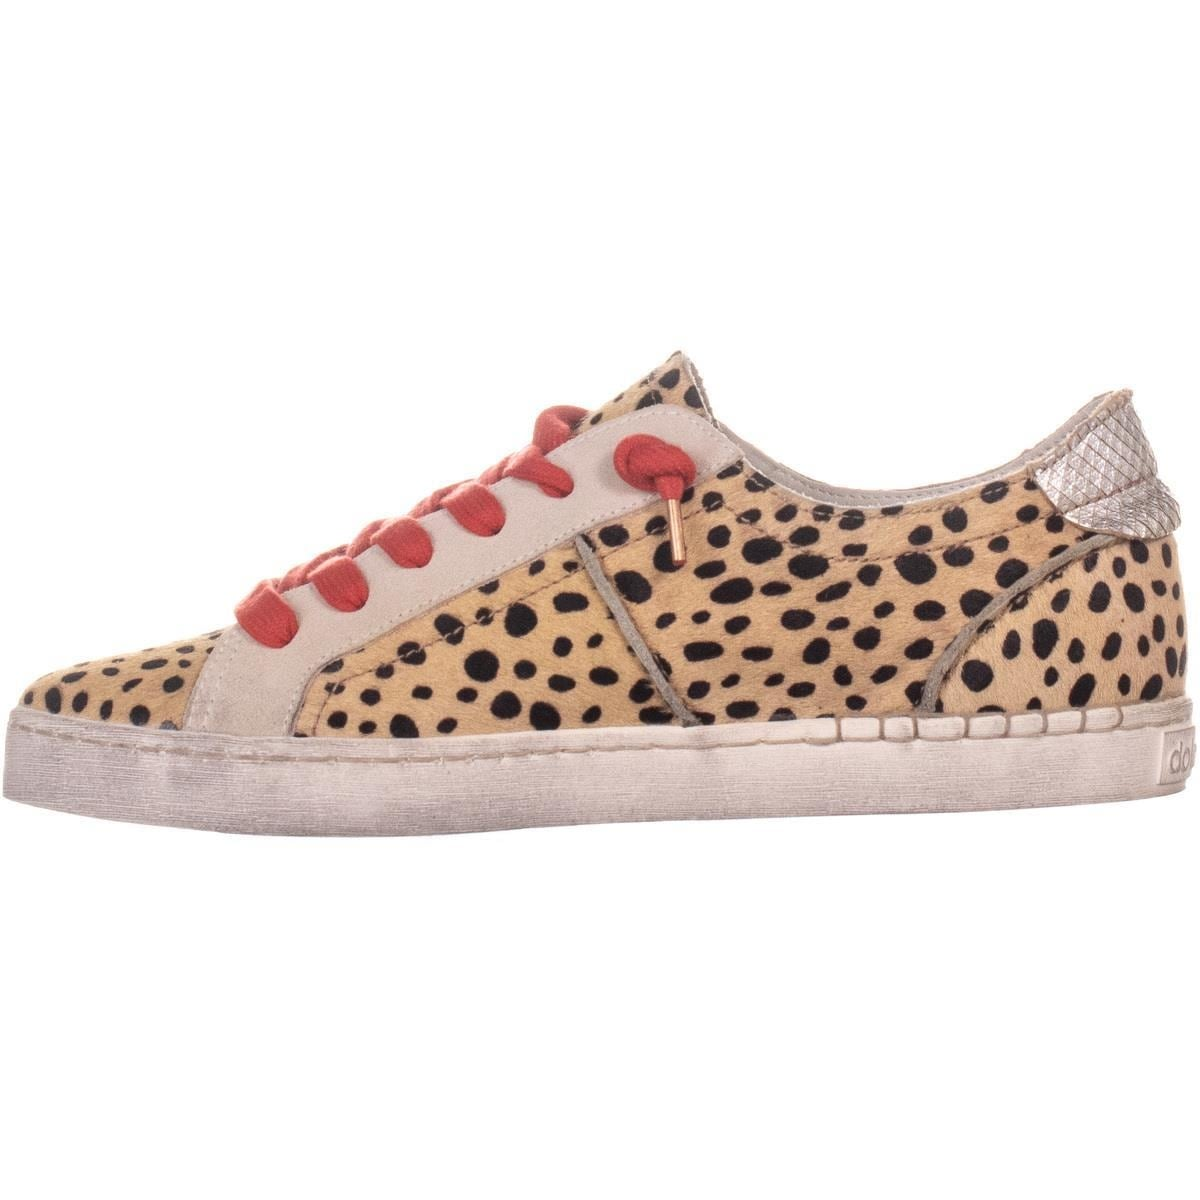 2904165f852e Shop Dolce Vita Zalen Lace Up Sneakers, Leopard - Free Shipping Today -  Overstock - 25769445